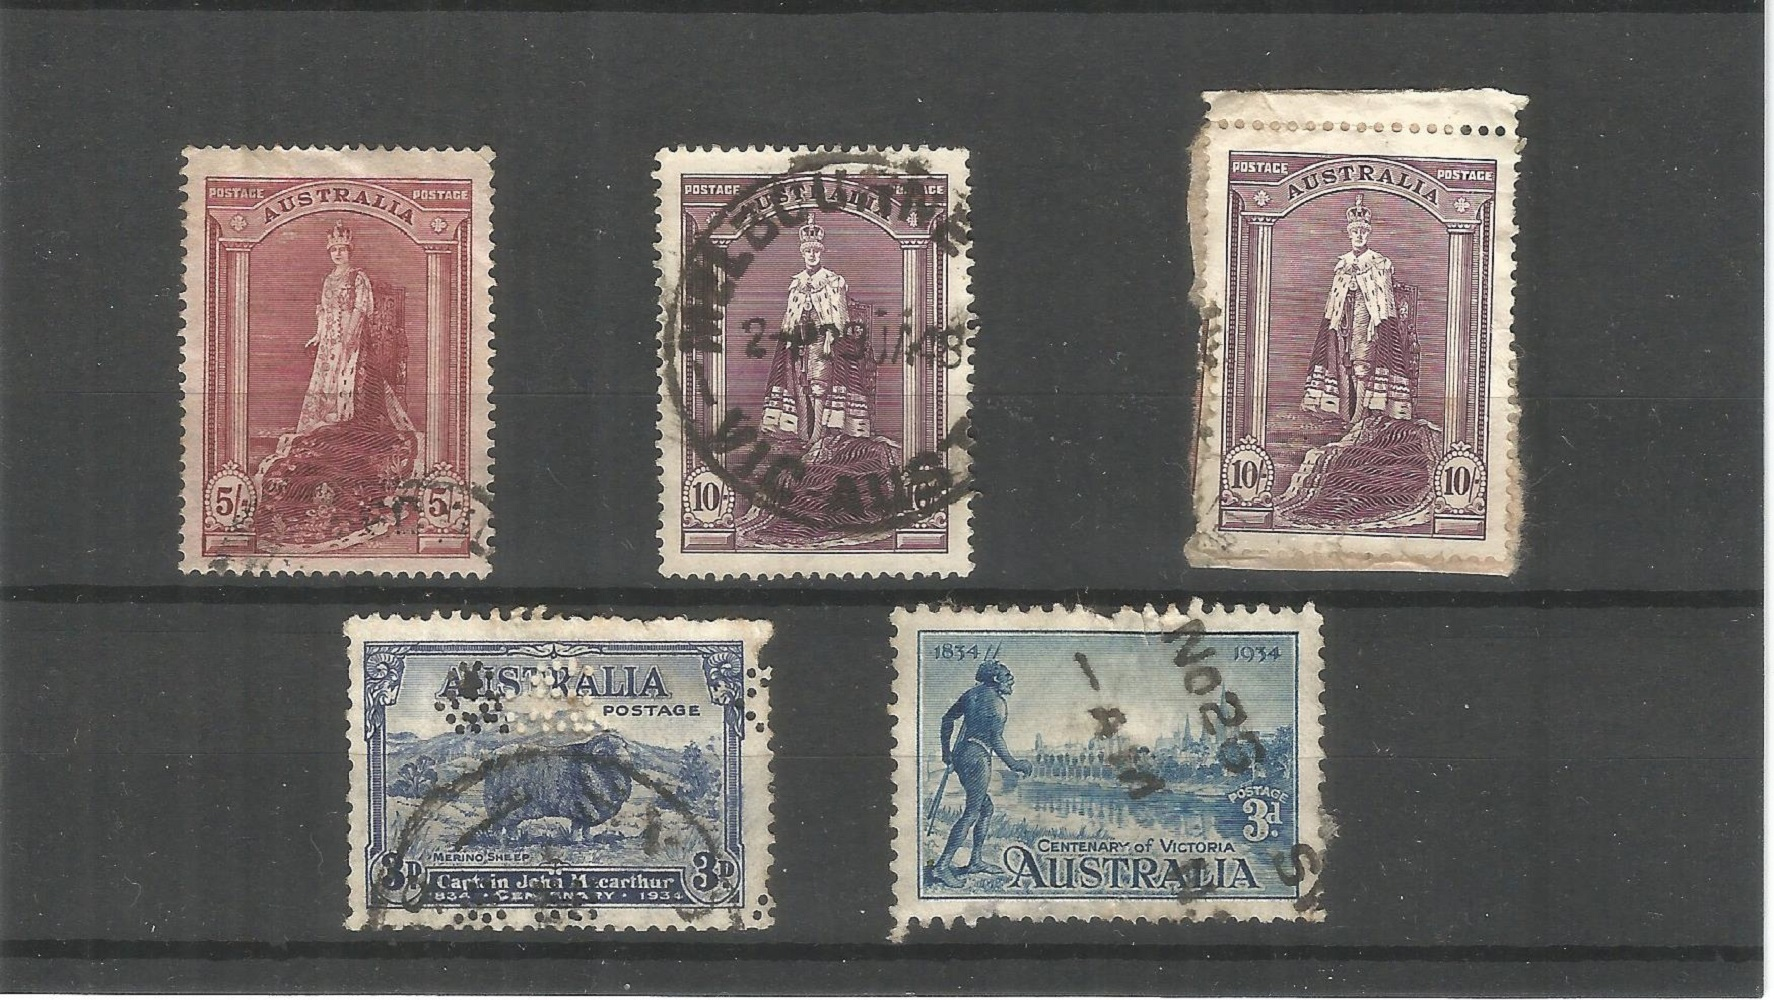 Australian stamp collection on stock card. 5 stamps. Cat value £60. 1937 defs 5/= and 10/=, 1934